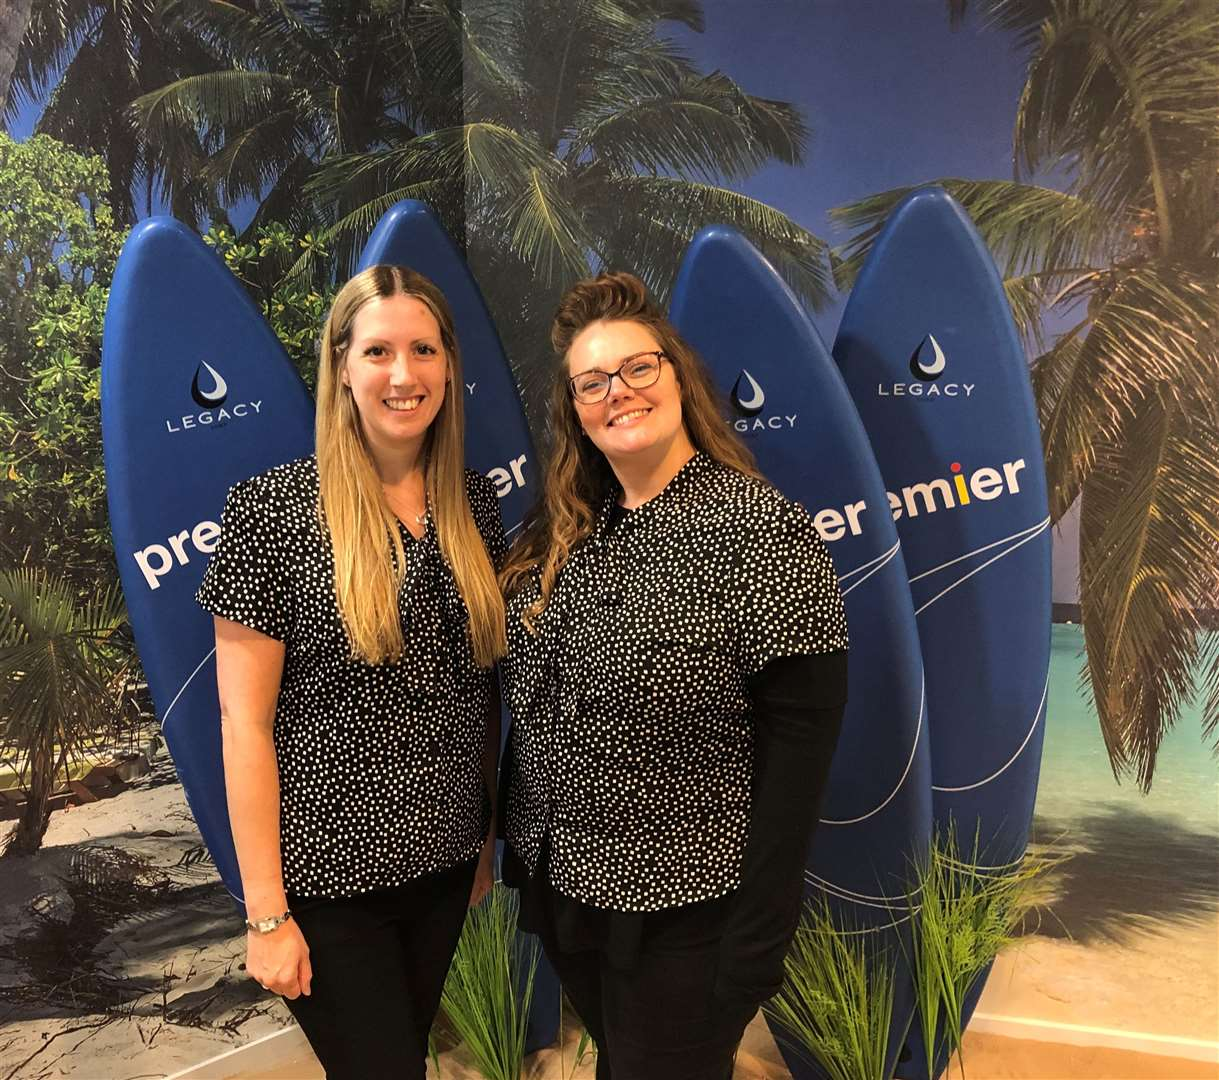 Natasha Walker and Nicola Lotts have joined Premier Travel in Bishop's Stortford after losing their jobs at Thomas Cook